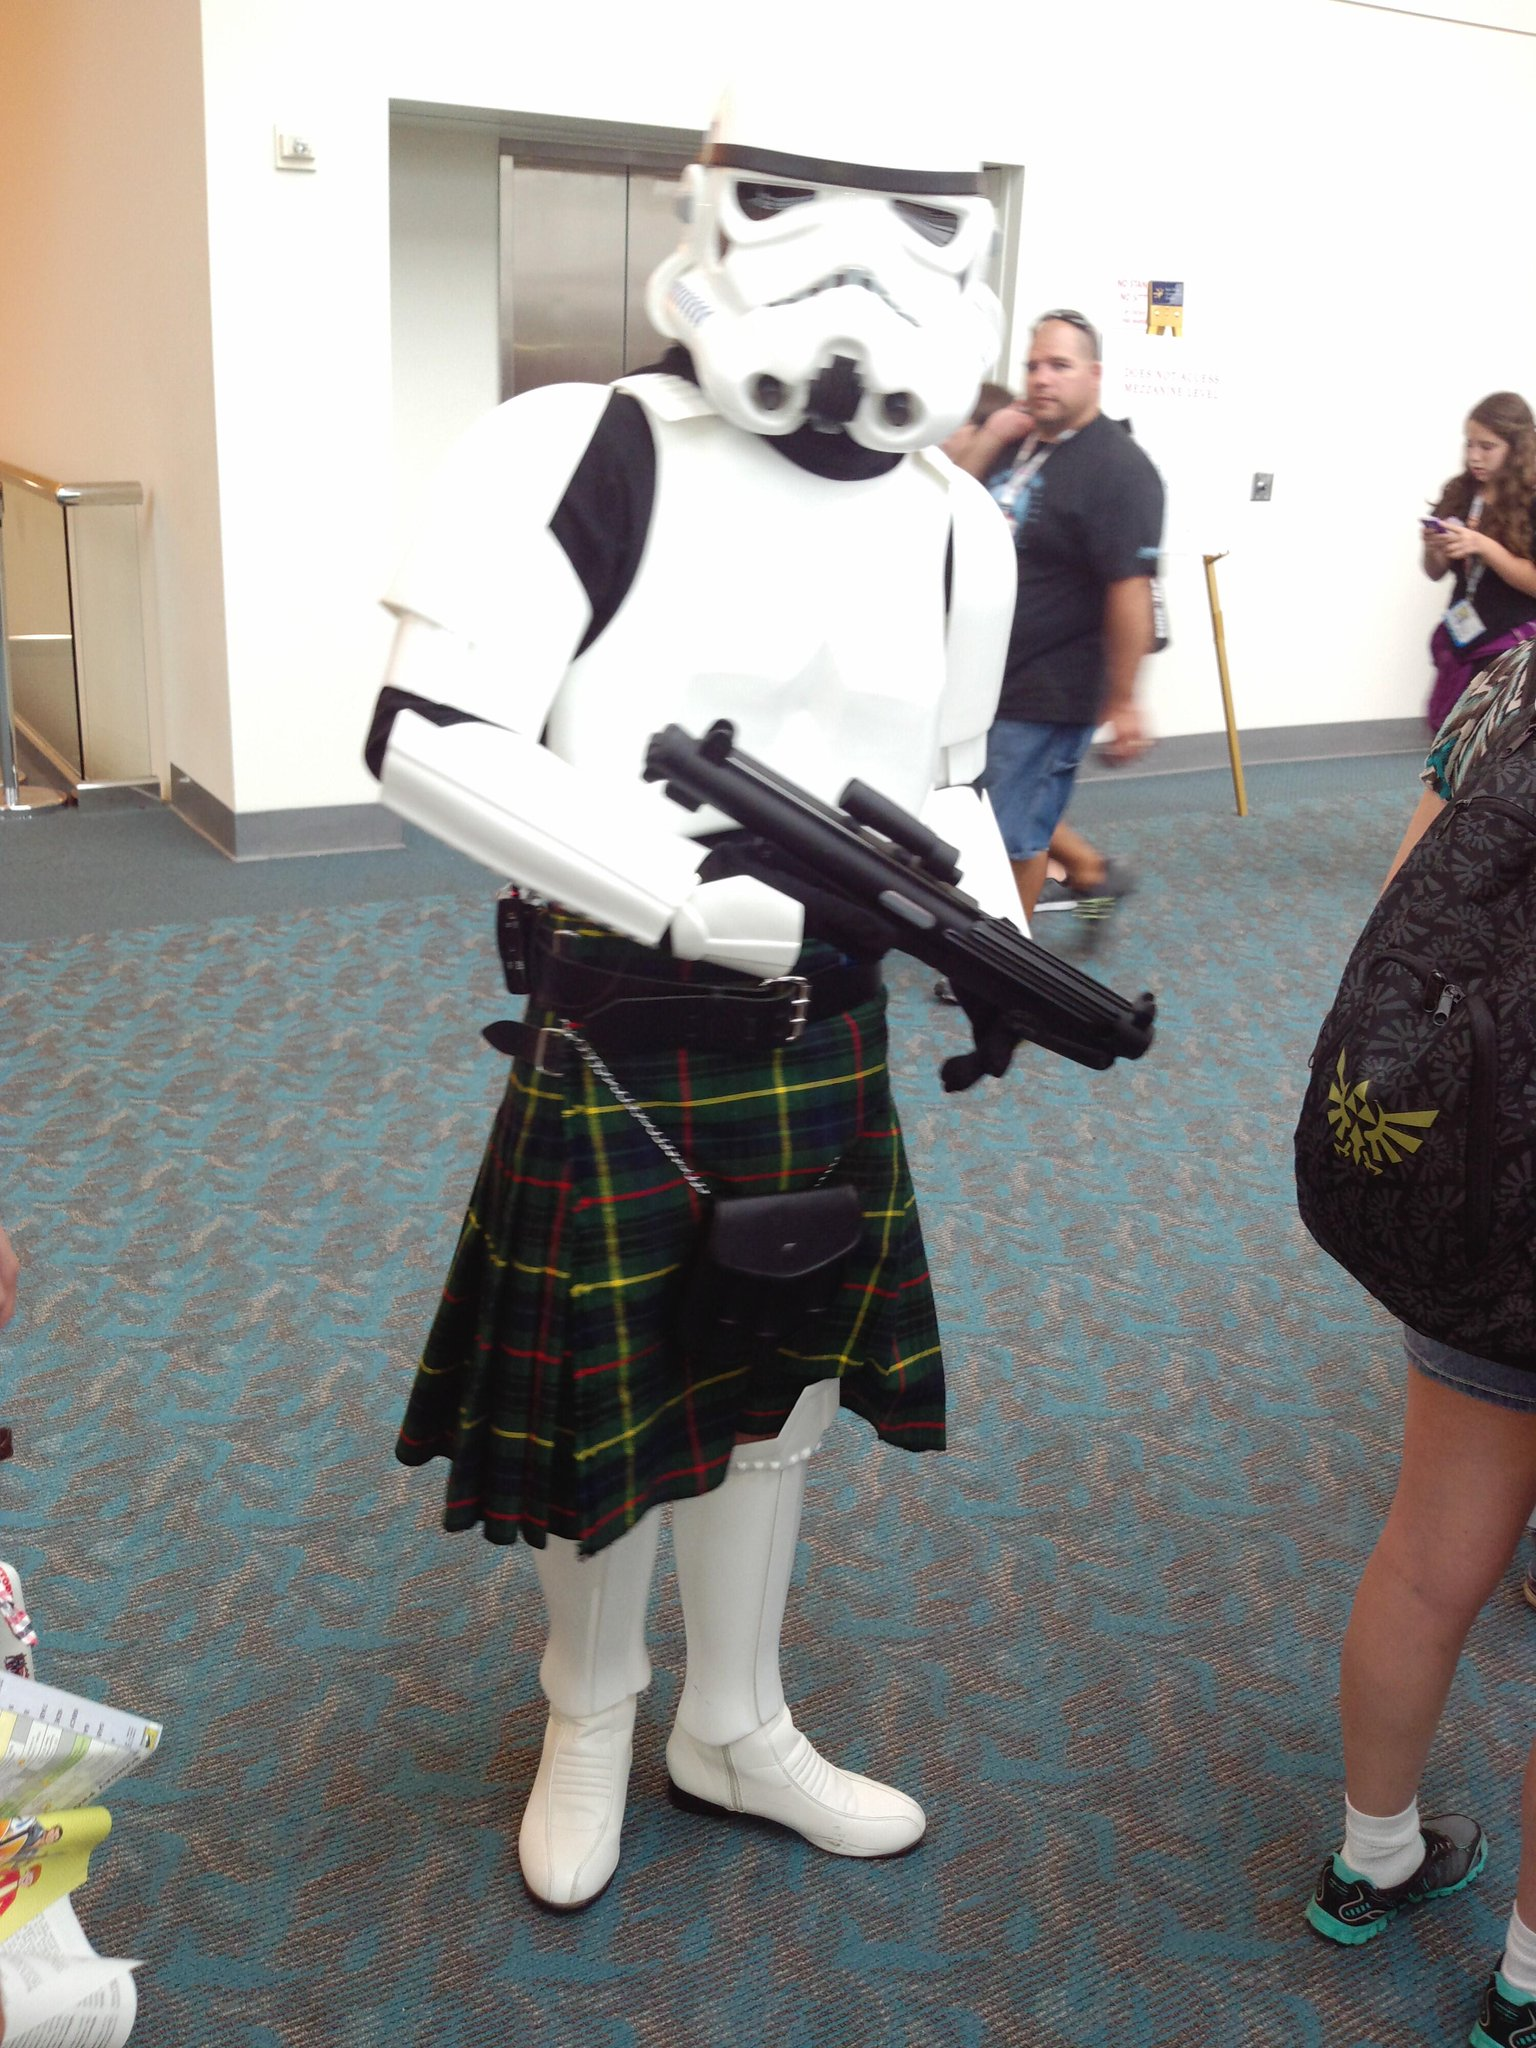 I know you ain't peepin' MY droids, yo.  Move along #stormtrooper, nothin' to see. Btw, nice kilt! #sdcc #starwars http://t.co/U0eSyxHRMR